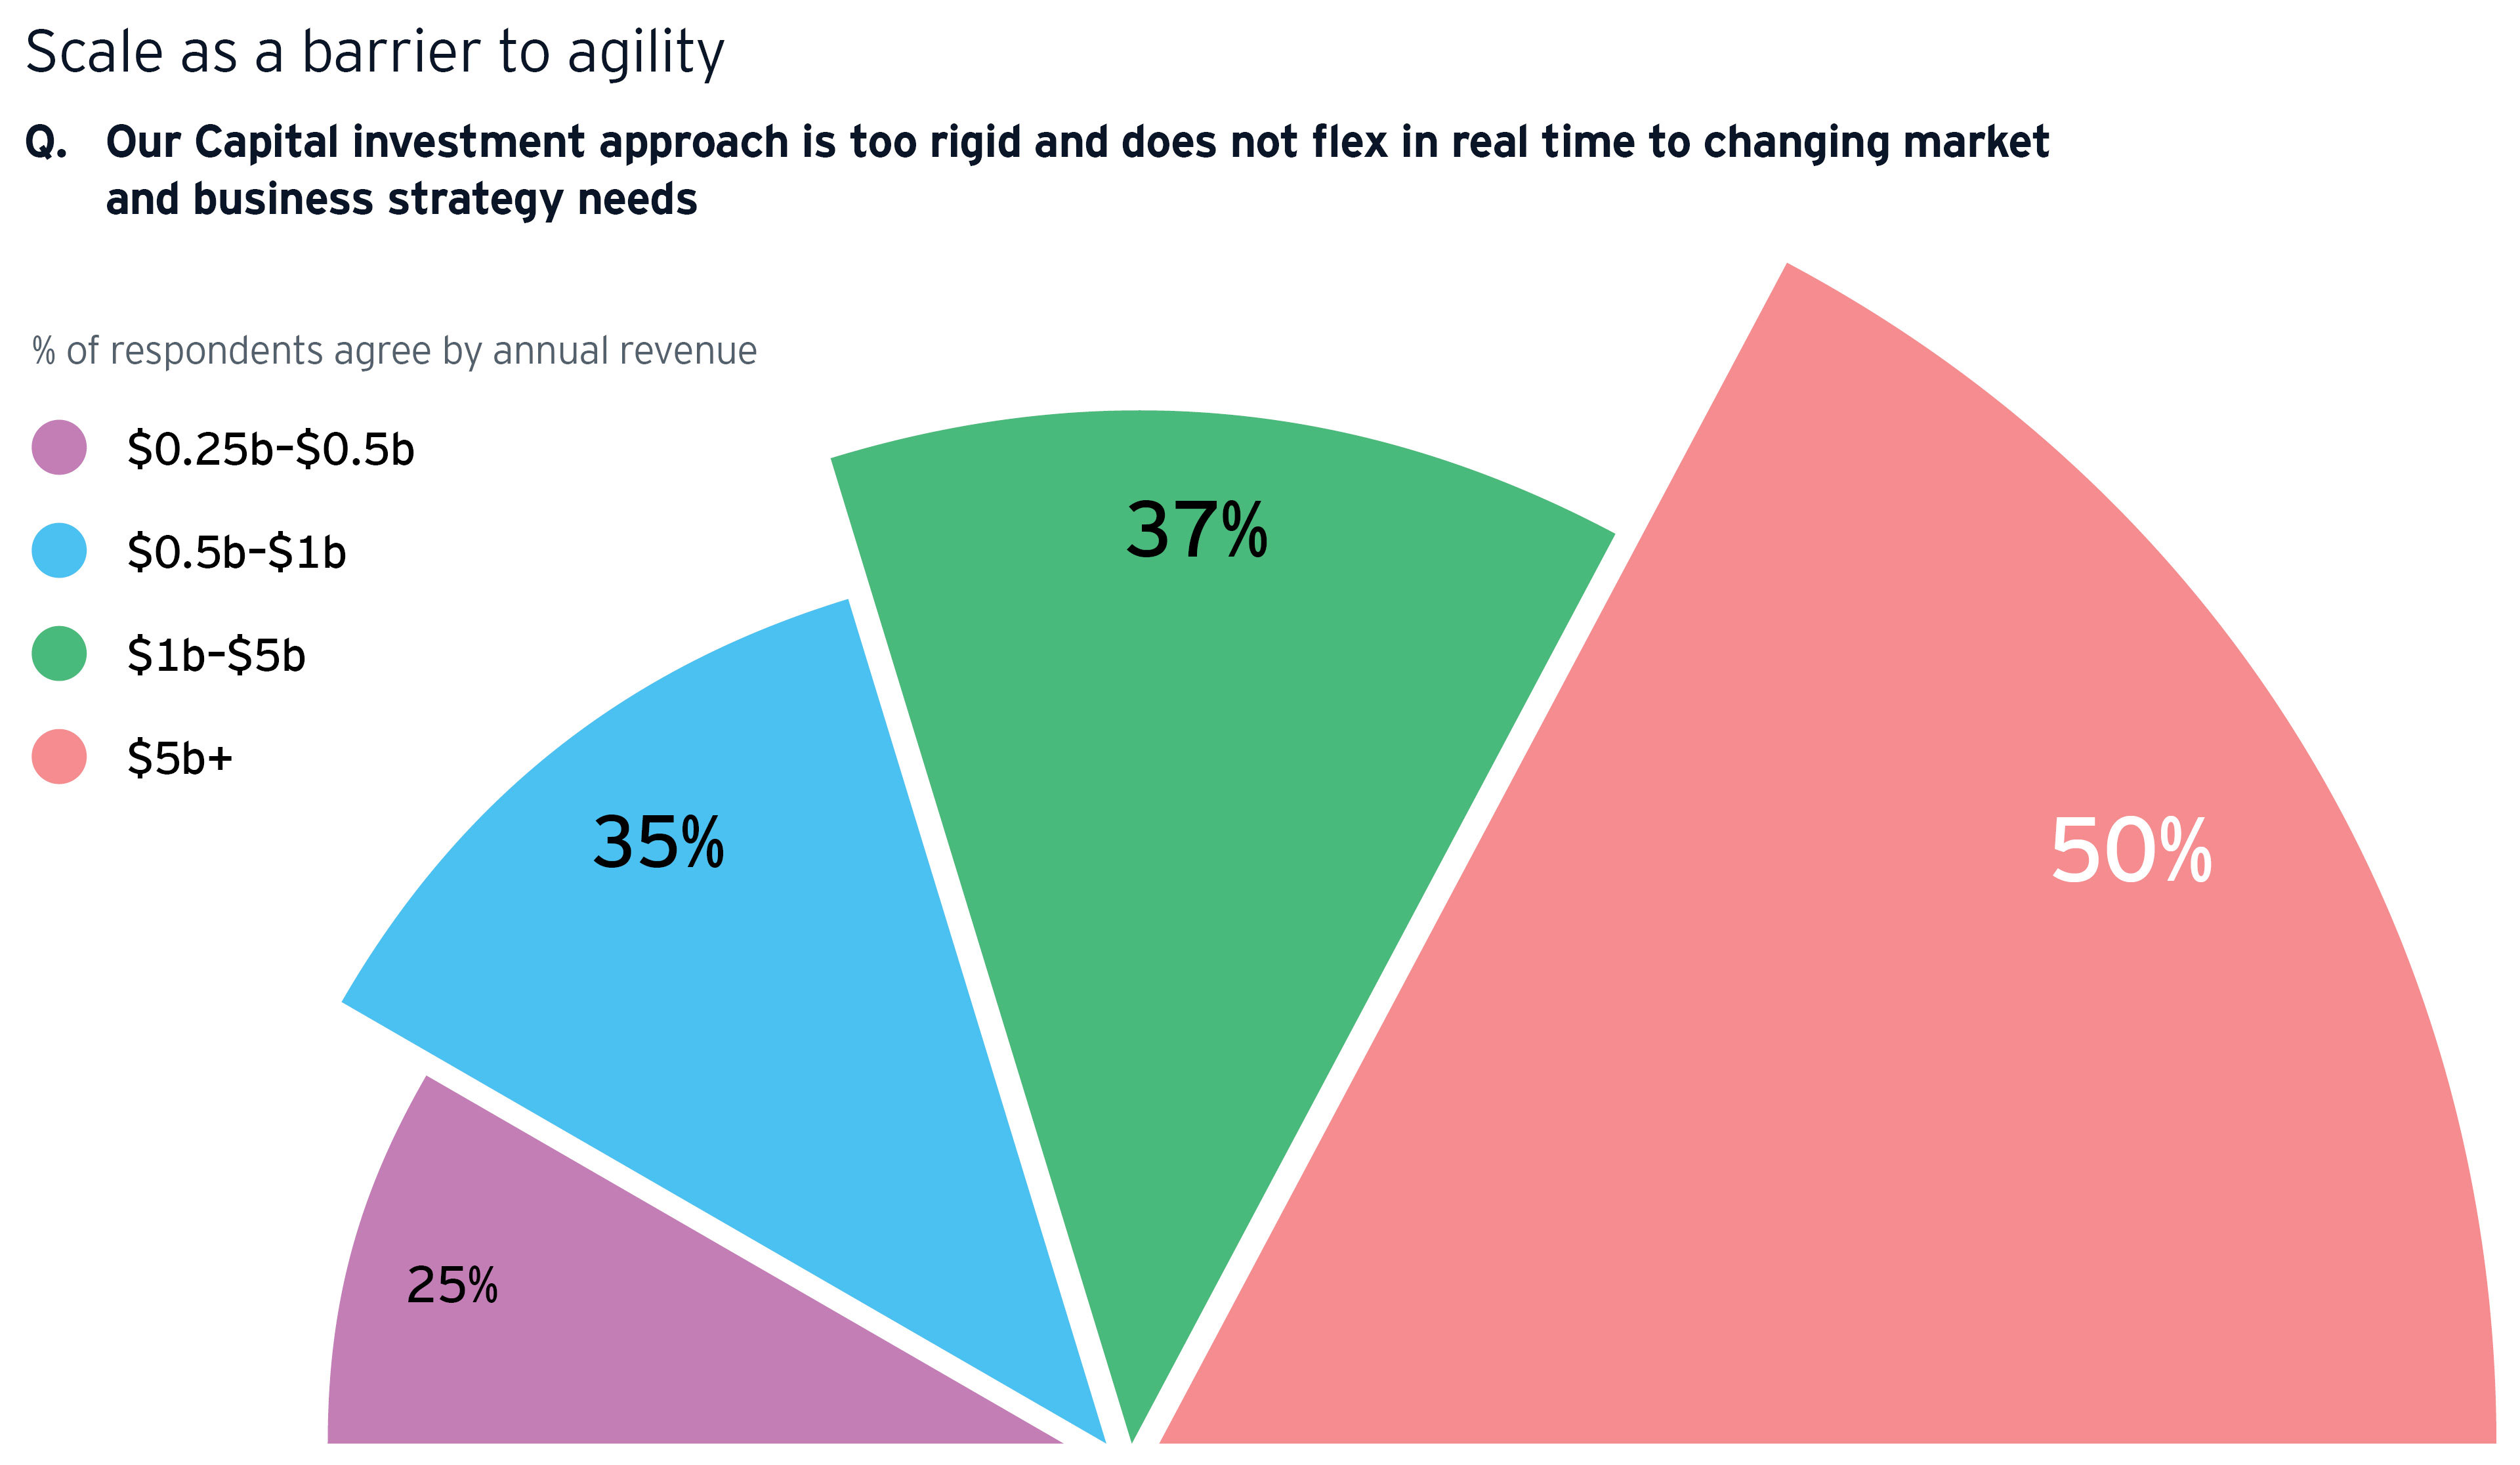 coins scale as a barrier to agility chart image